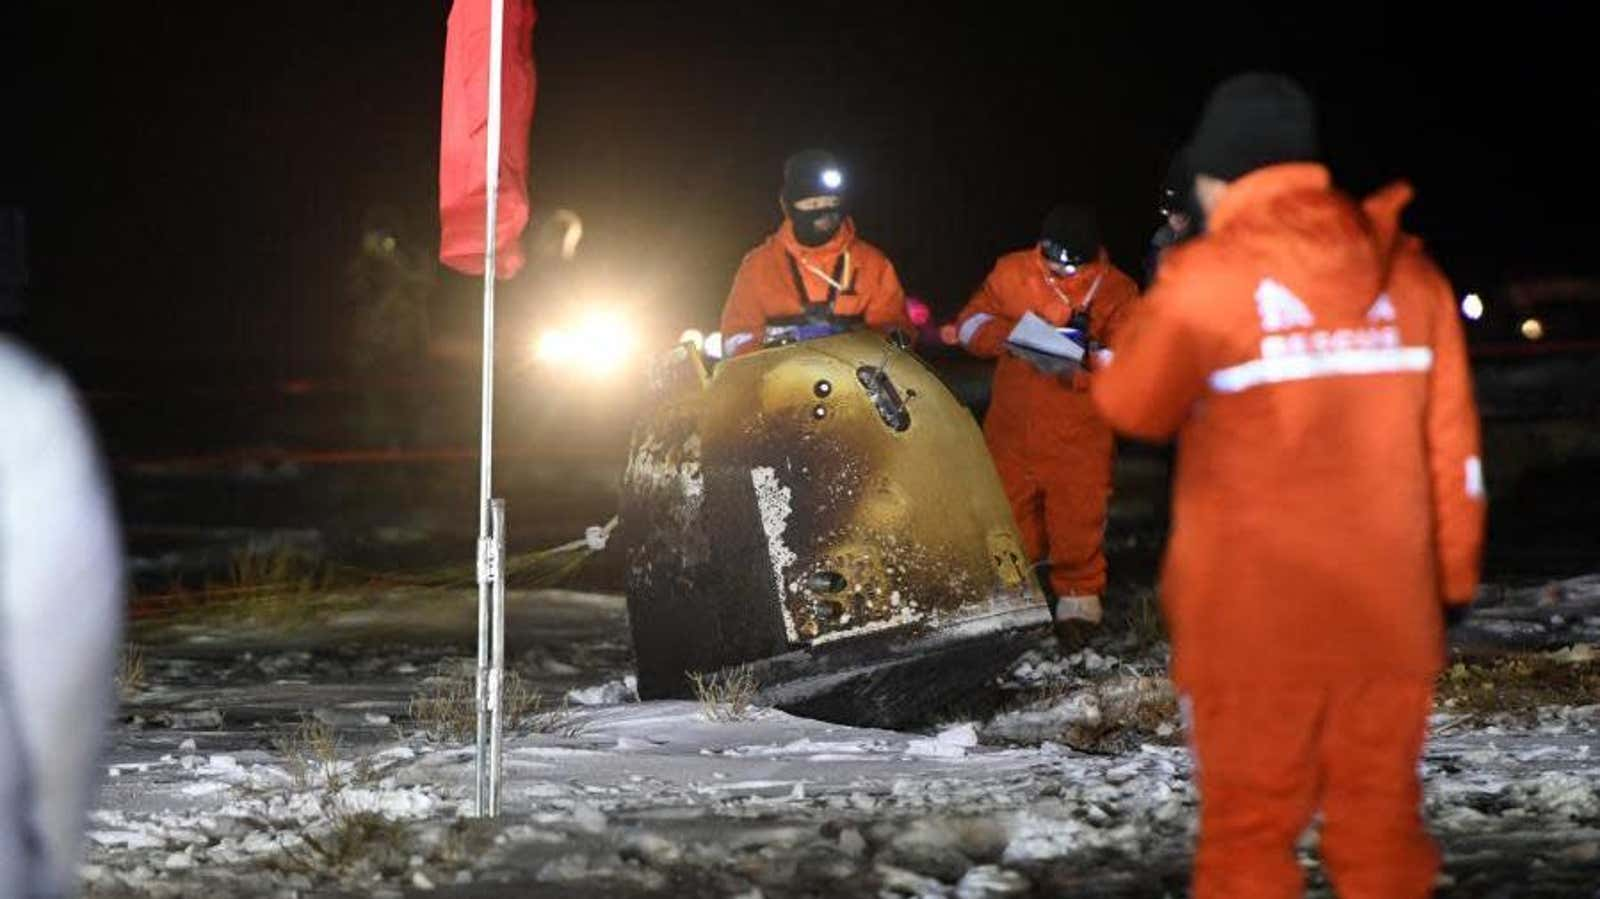 Lunar Samples Land on Earth, Completing China's Most Challenging 'Space Adventure'